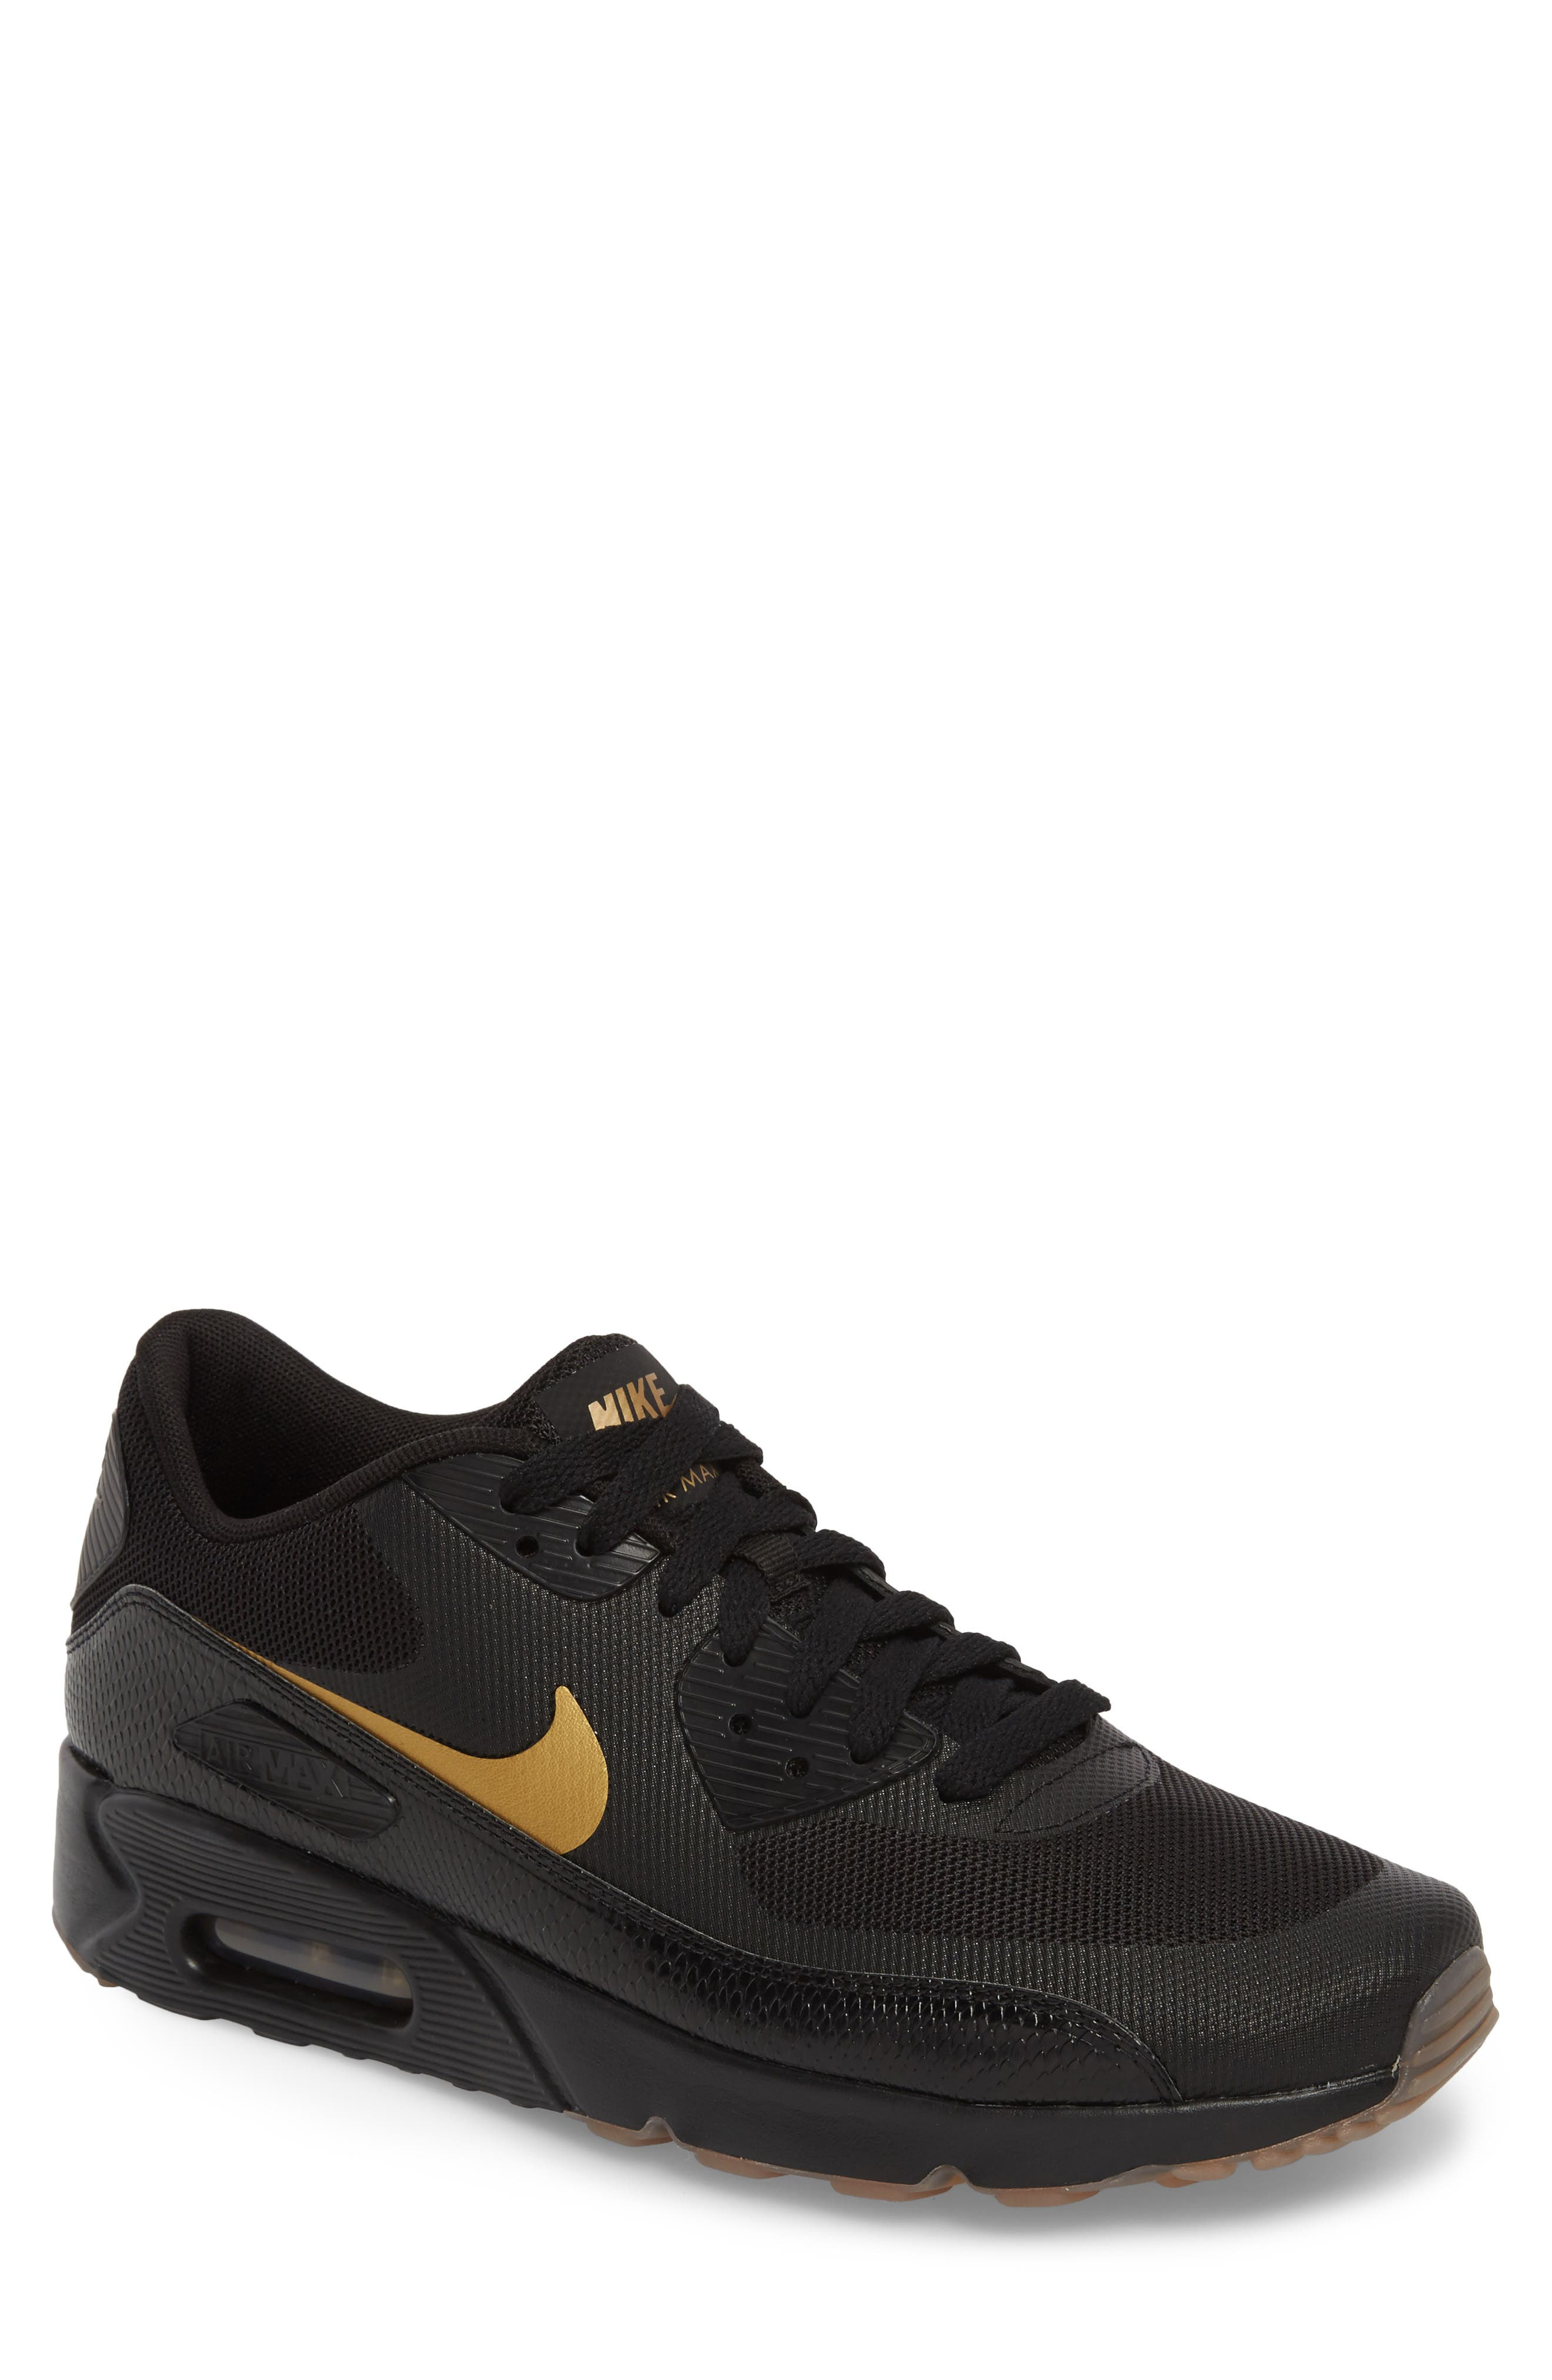 Air Max 90 Ultra 2.0 Essential Sneaker,                             Main thumbnail 1, color,                             016